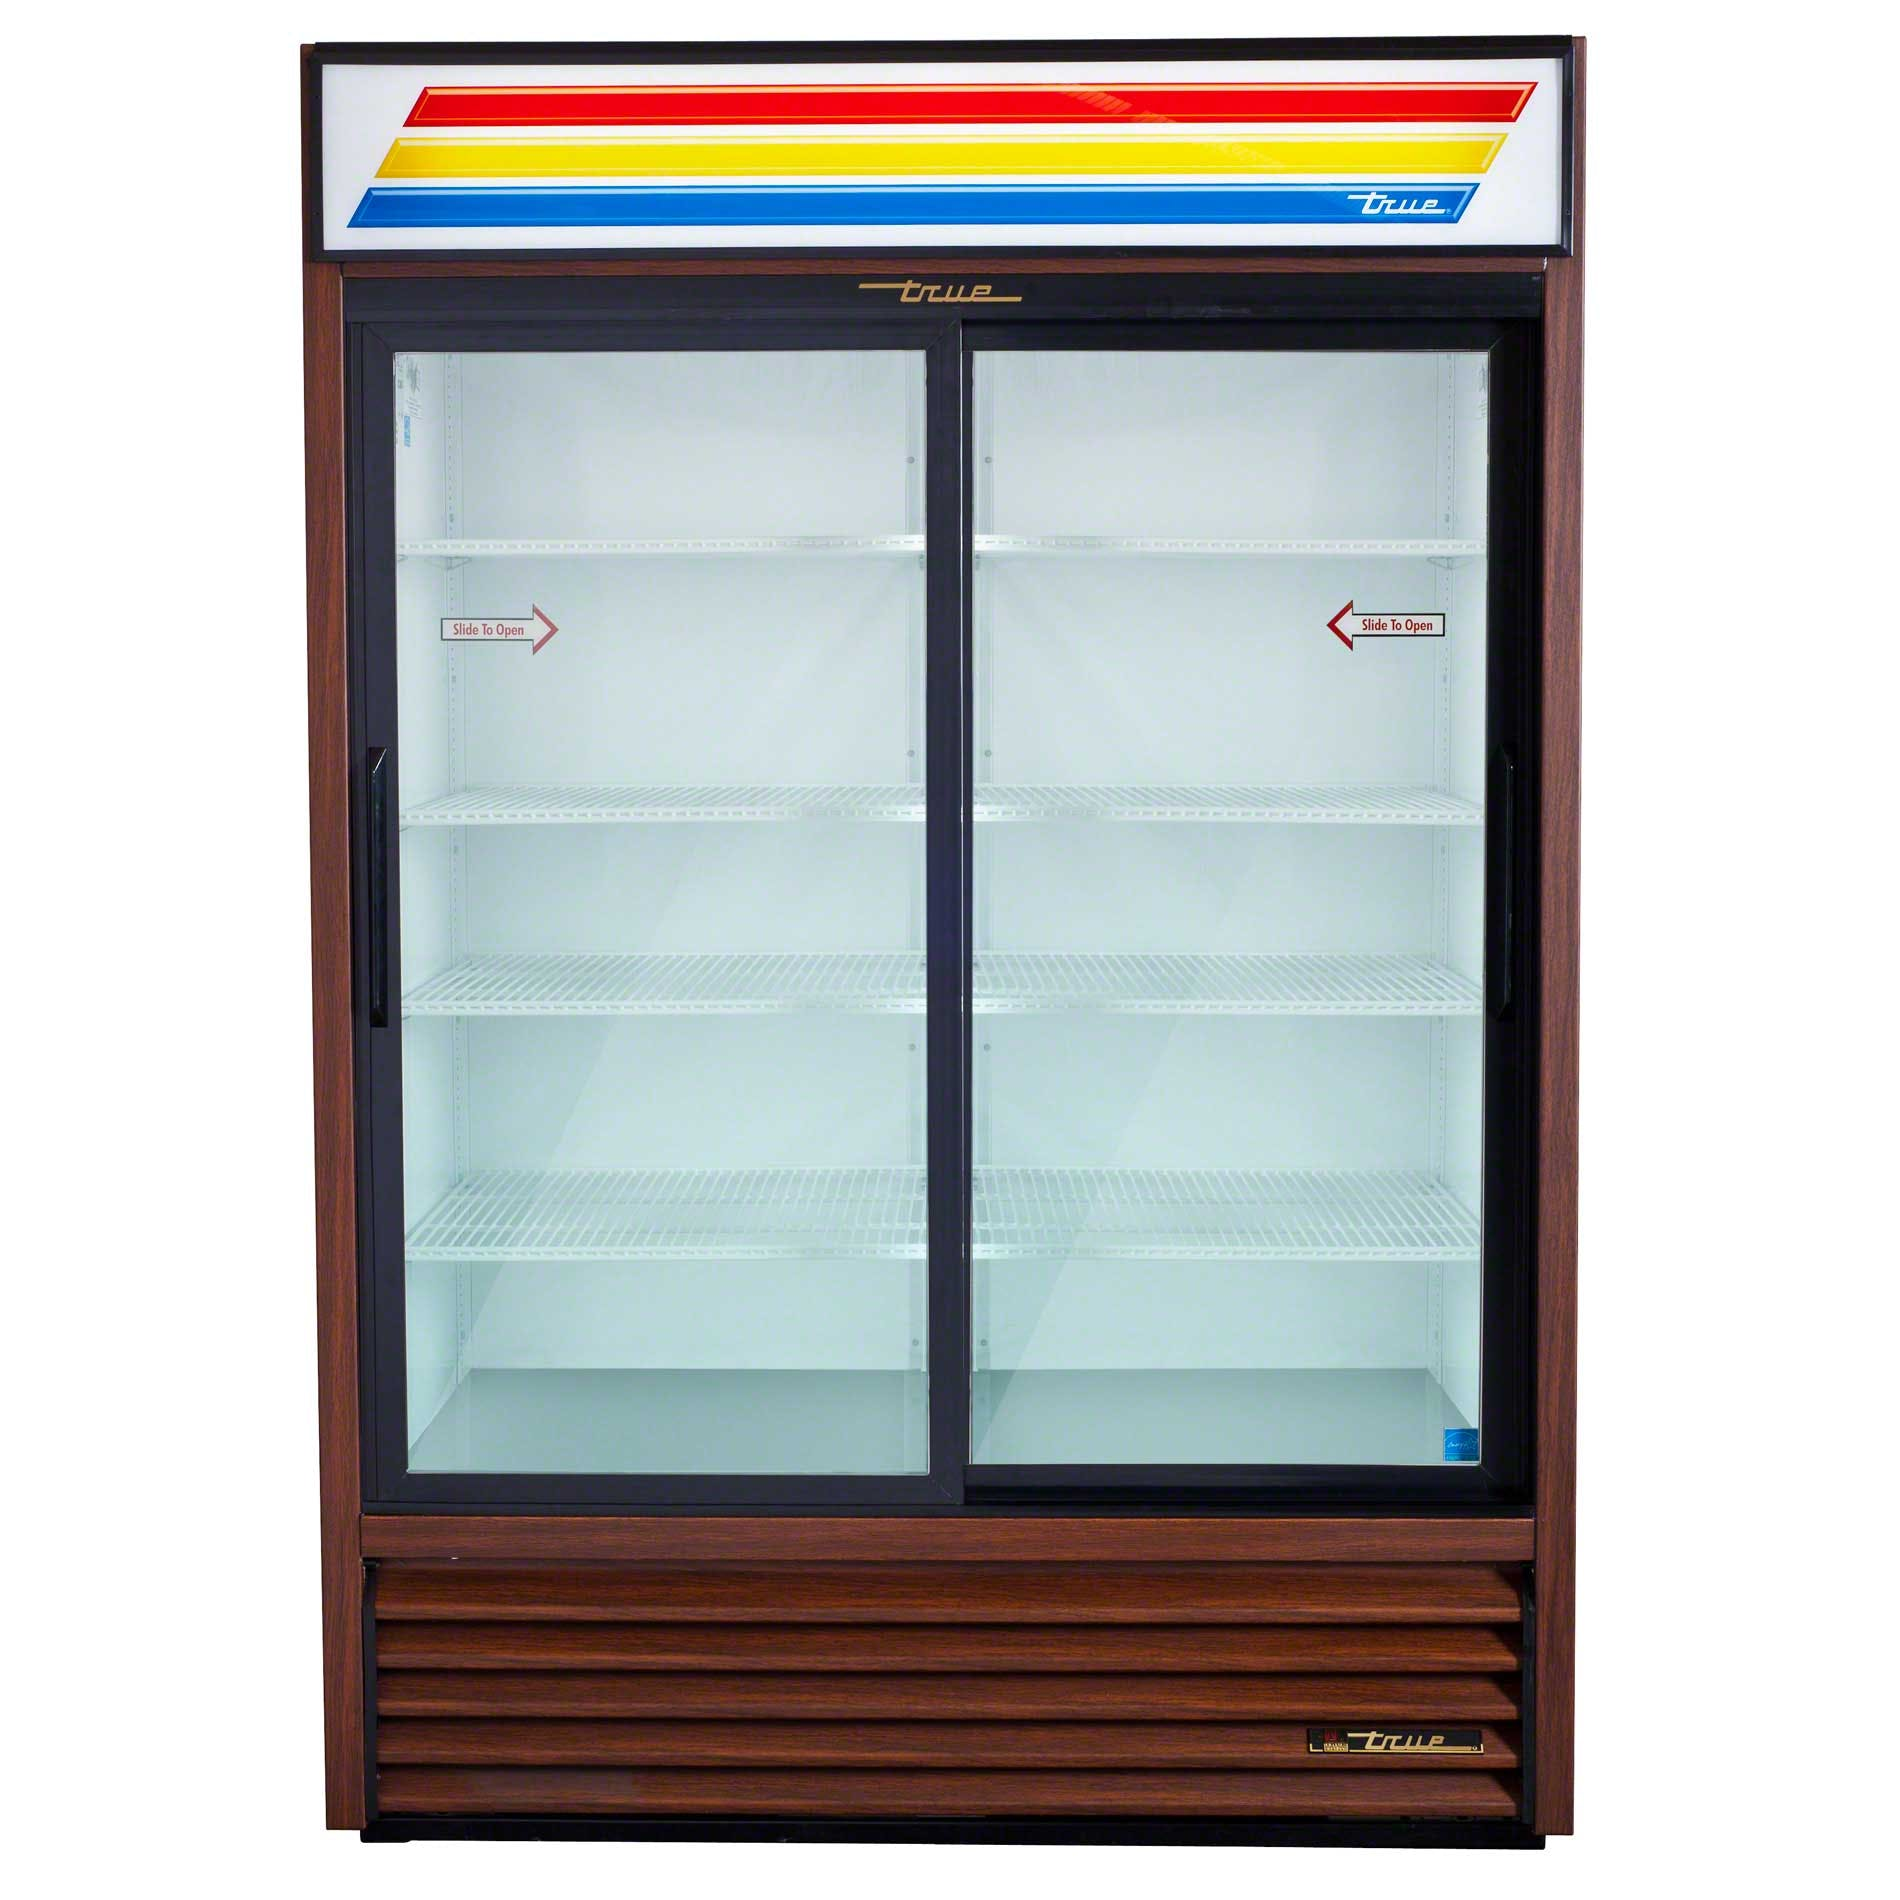 "True - GDM-47 54"" Slide Glass Door Merchandiser Refrigerator Commercial refrigerator sold by Food Service Warehouse"